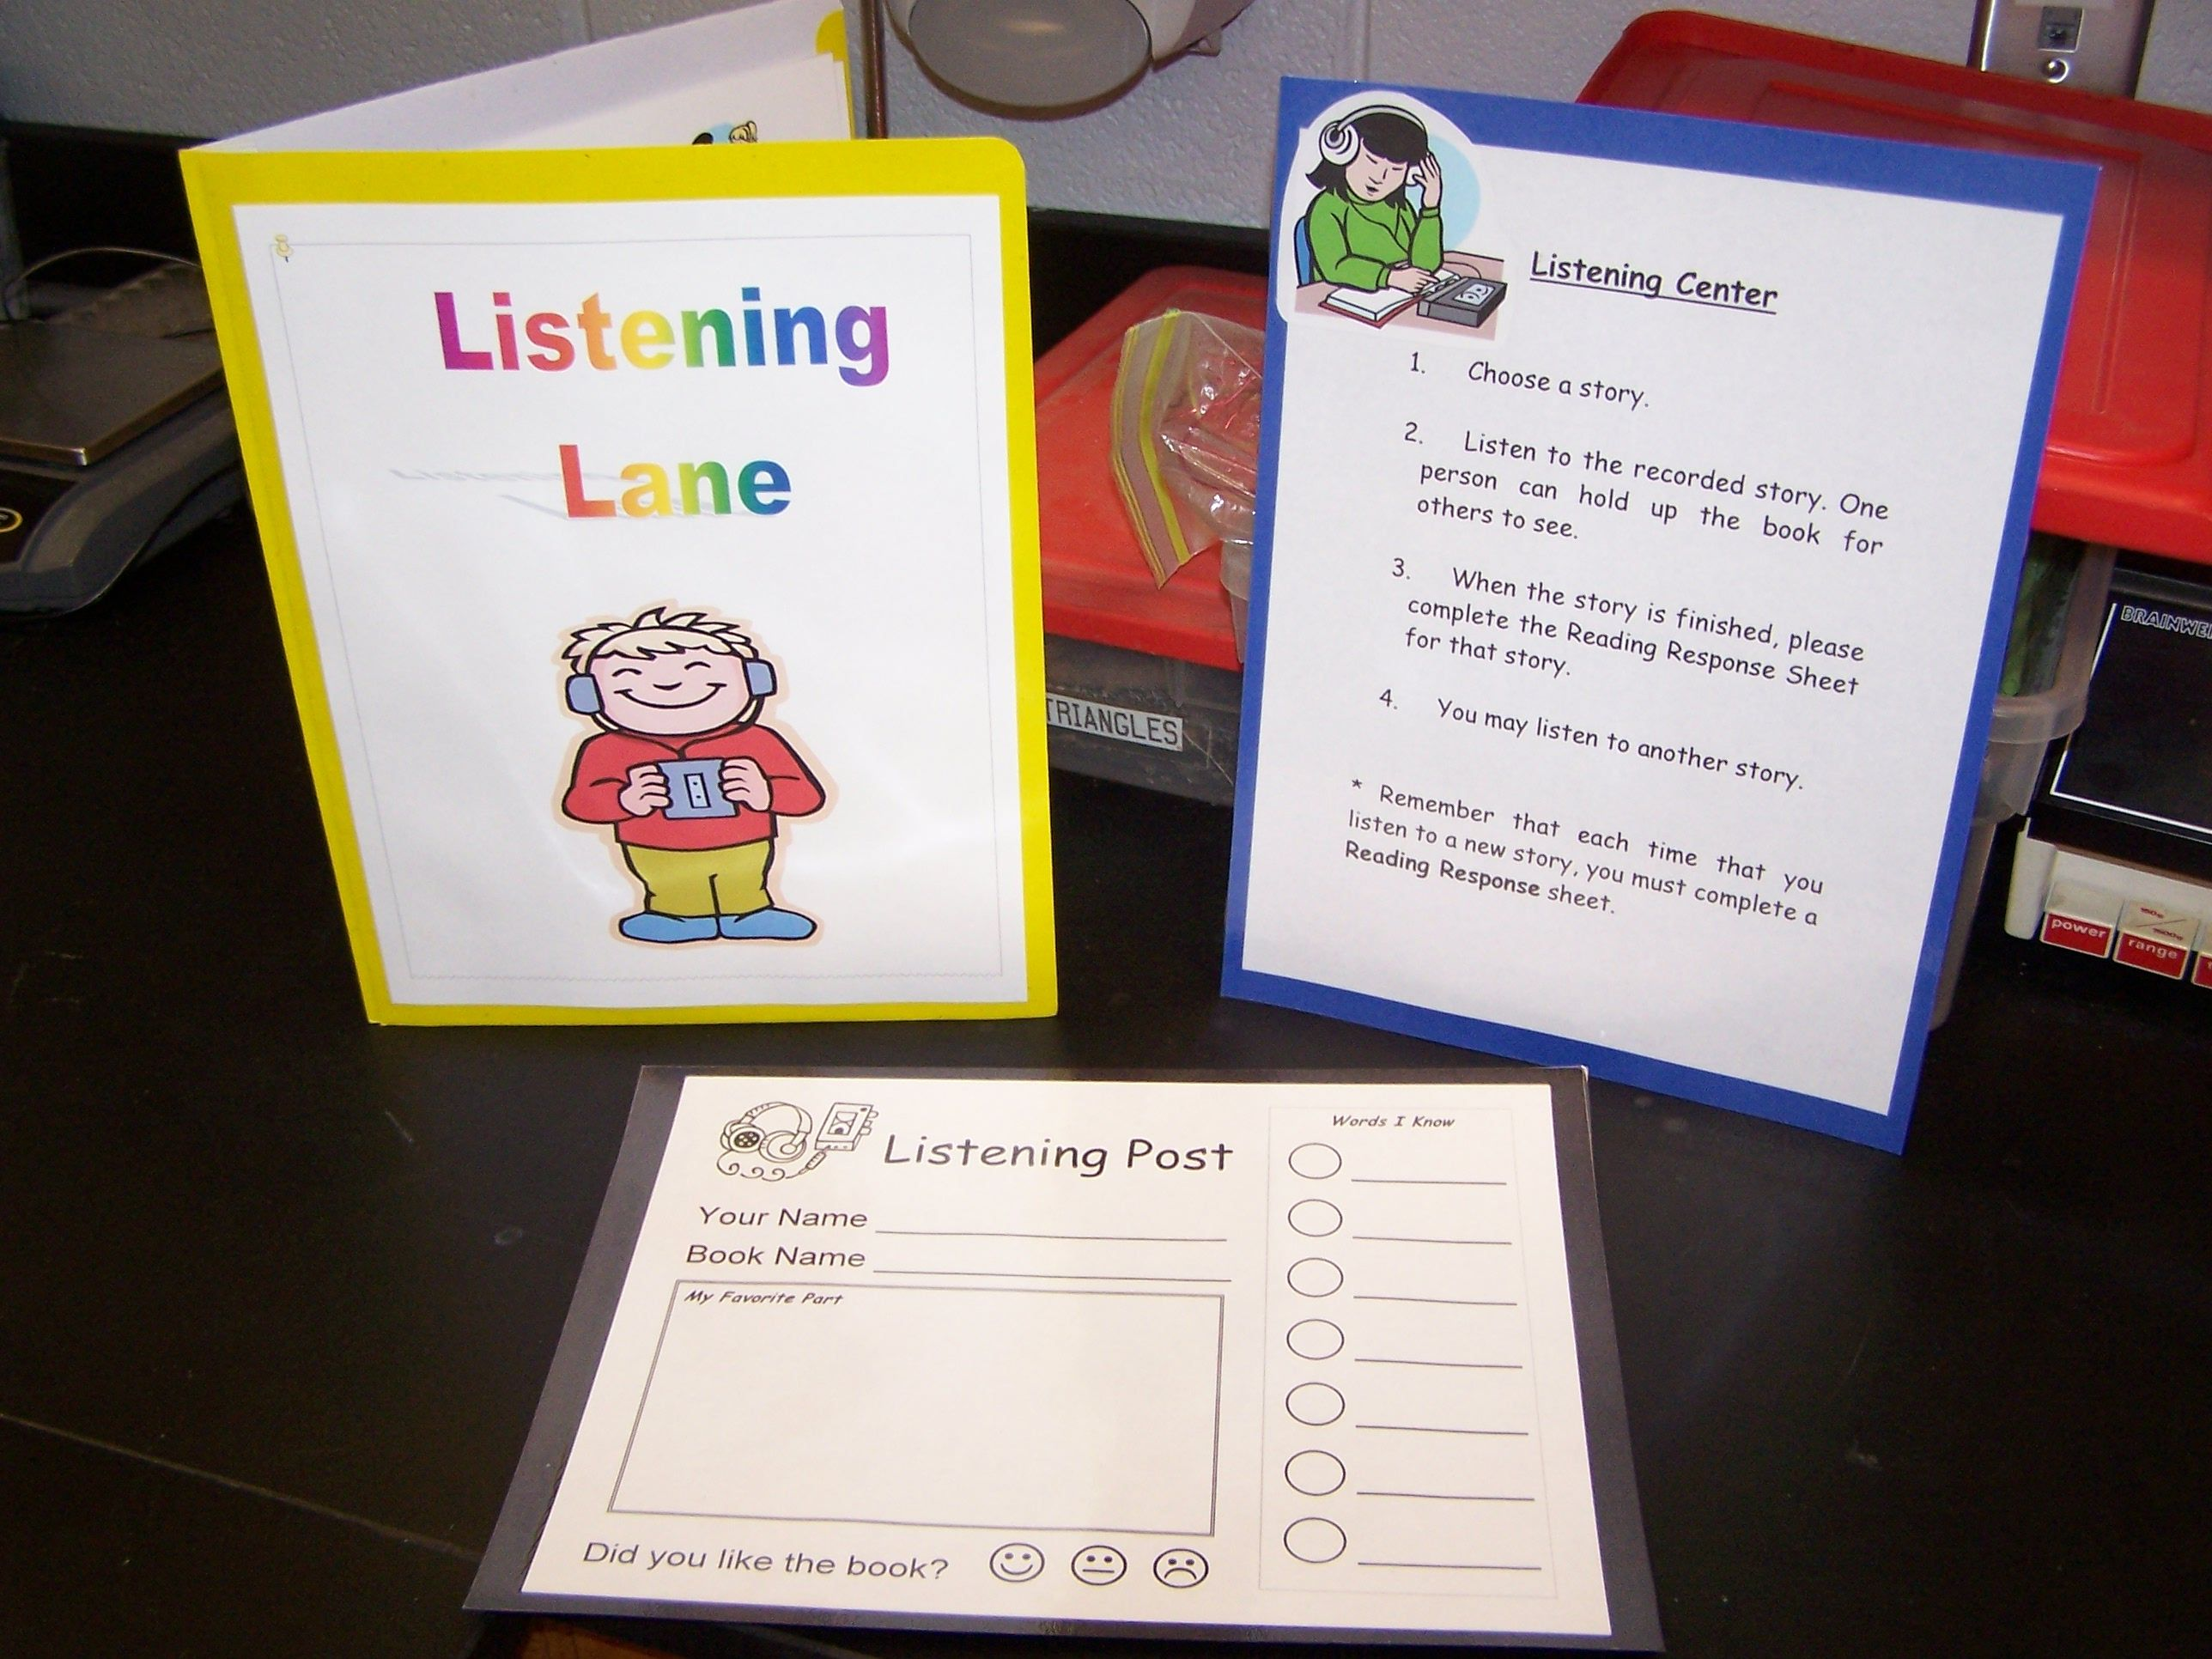 Listening Center Good Response Sheet